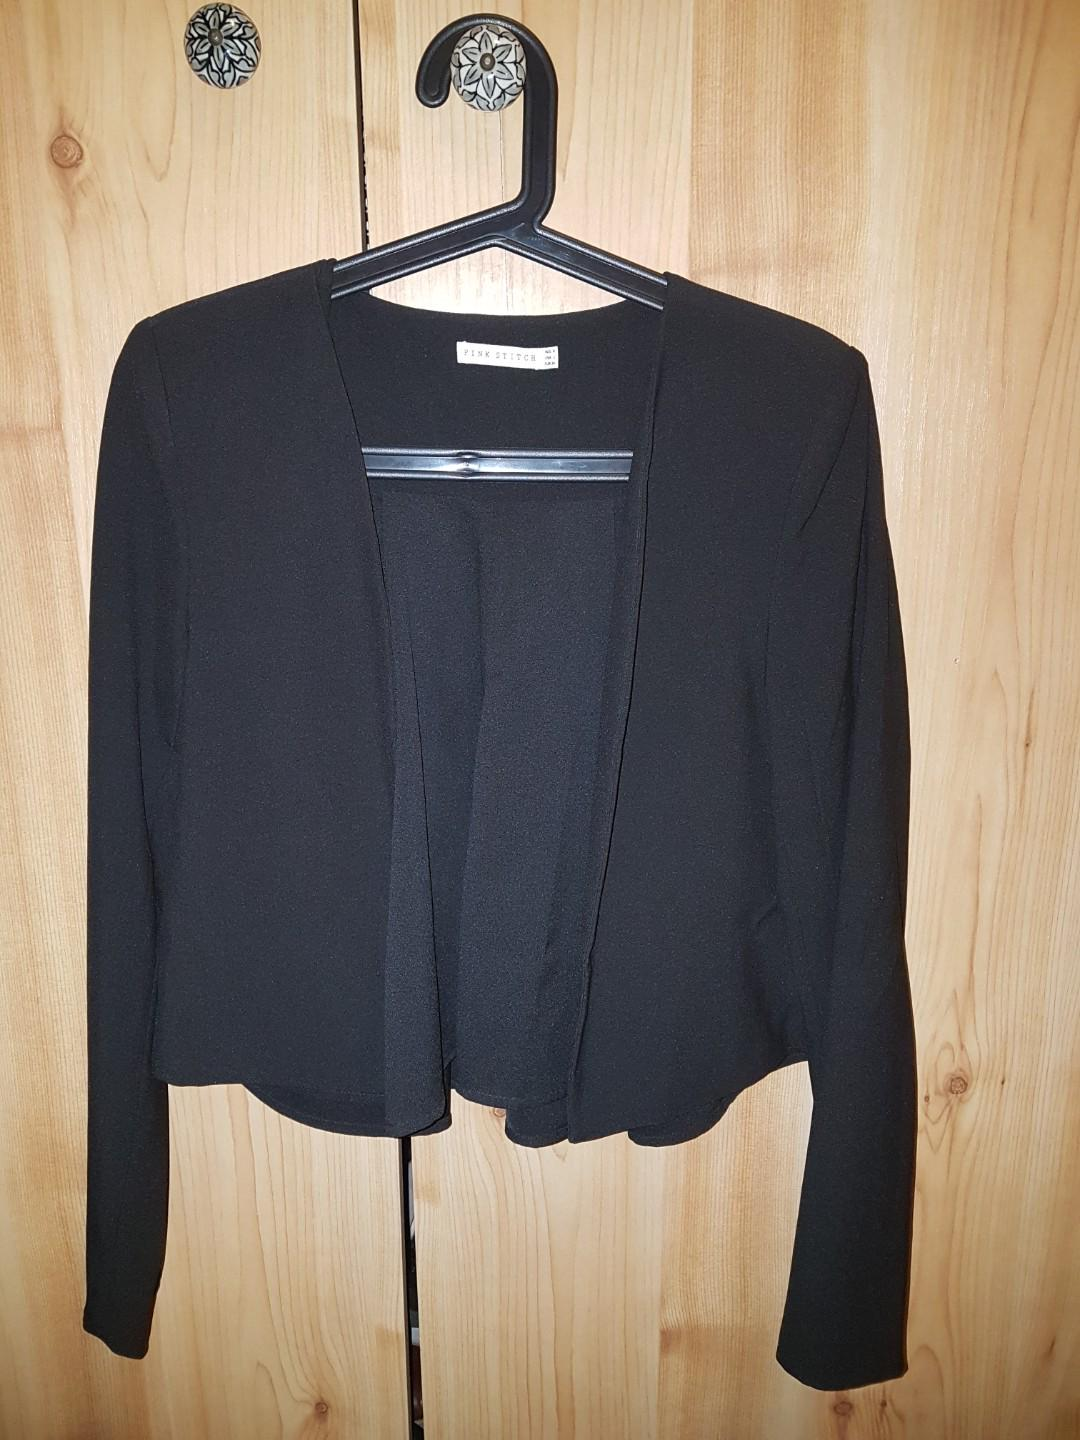 Black relaxed blazer